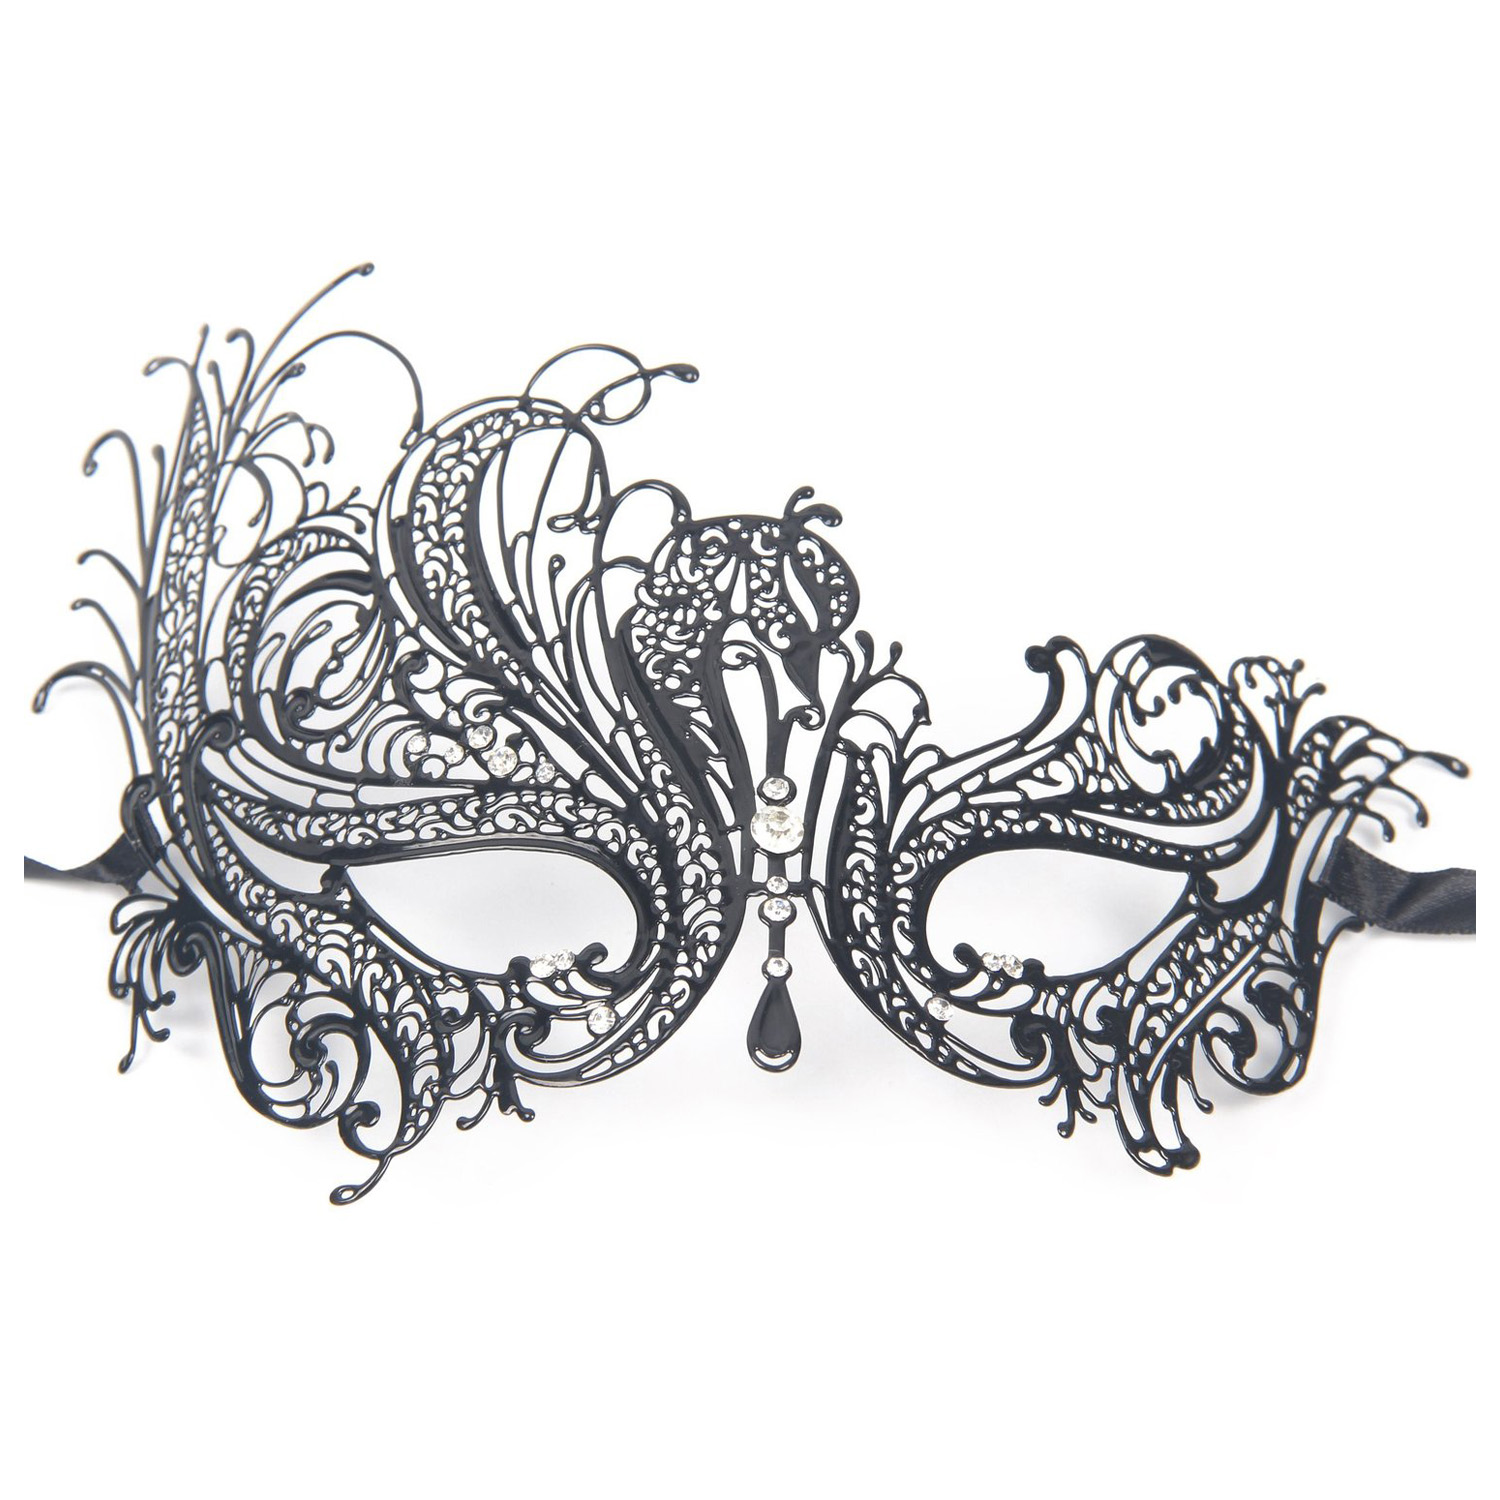 Metal Laser Cut Filigree Masquerade Venetian Party Mask Black